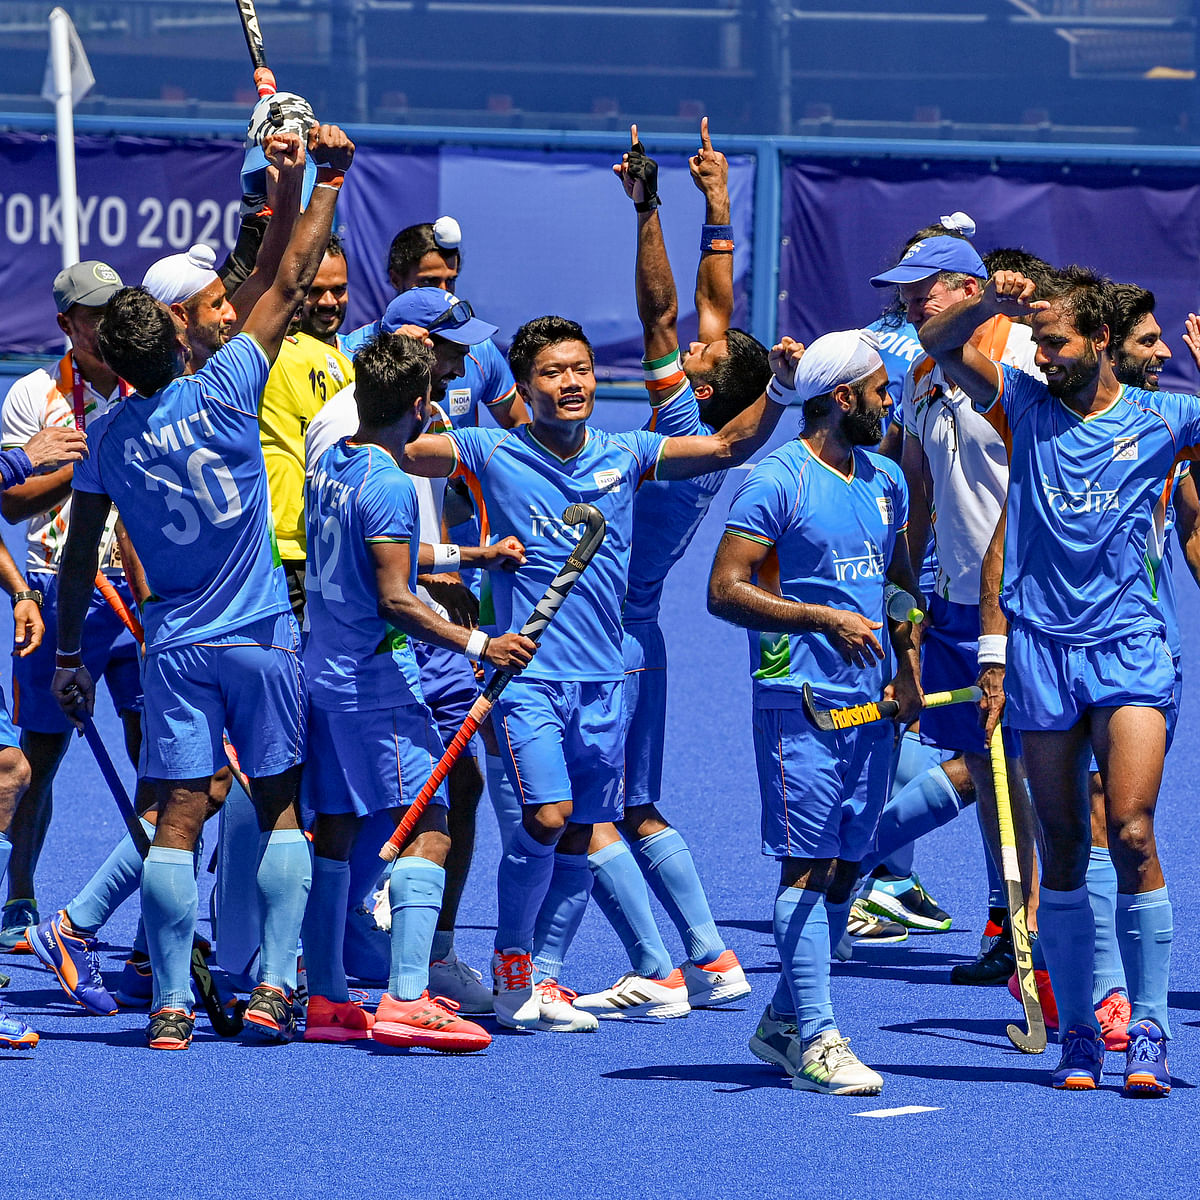 Historic Tokyo Olympics hockey win: Punjab minister announces Rs 1 crore cash reward for each player